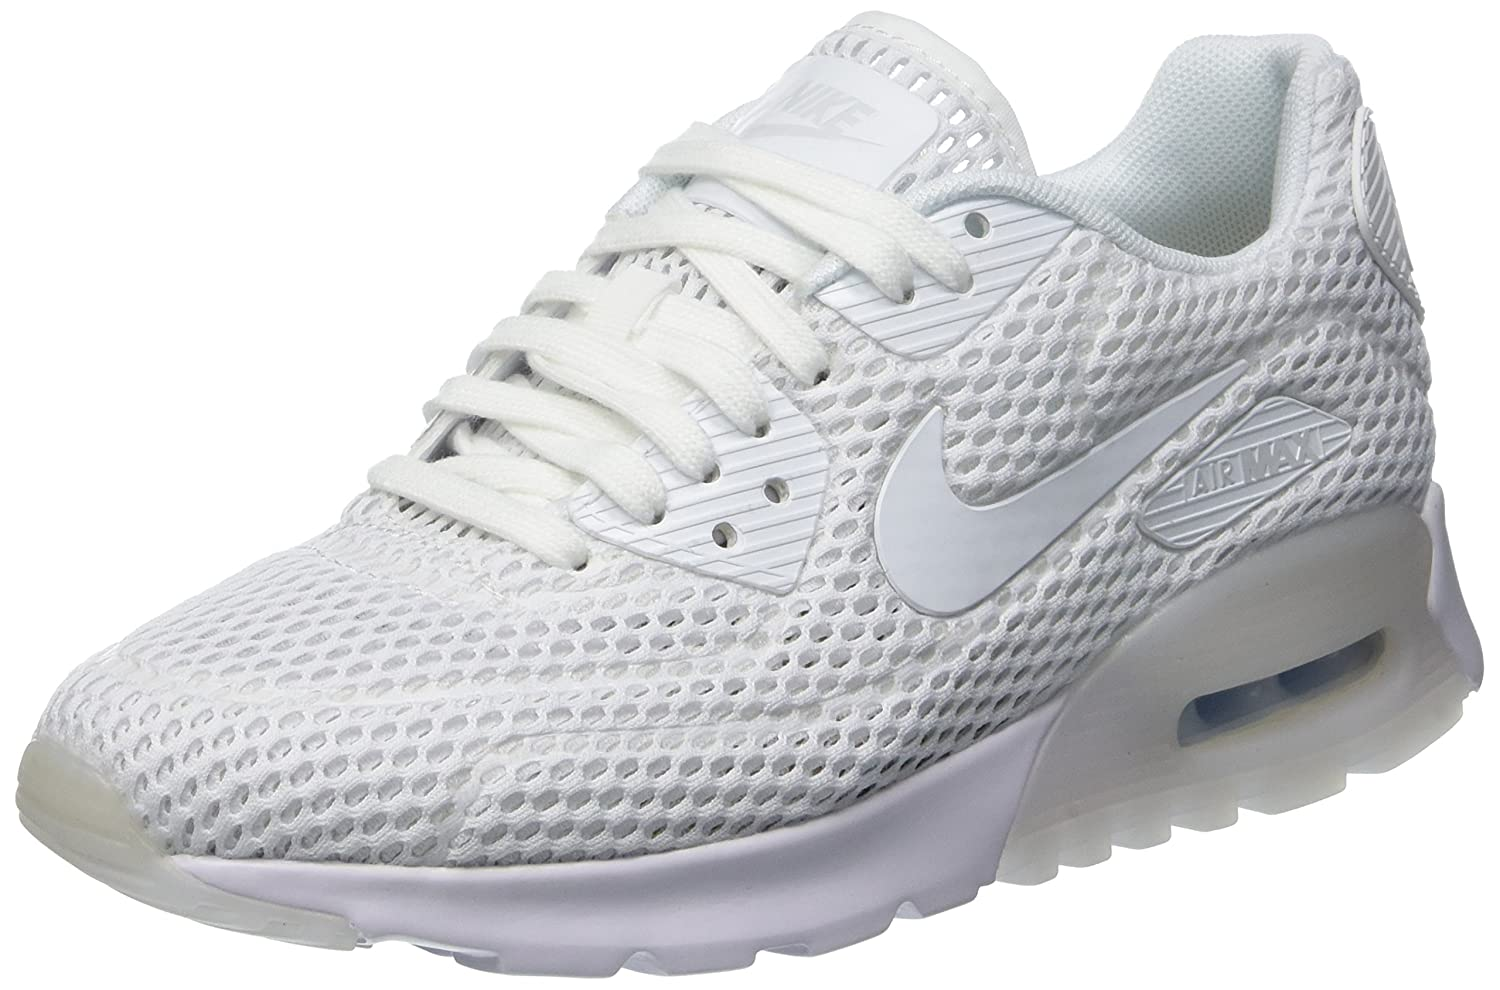 best website d6749 e3958 Amazon.com   Nike Womens air max 90 Ultra BR Running Trainers 725061  Sneakers Shoes (US 6.5, White Pure Platinum 104)   Fashion Sneakers